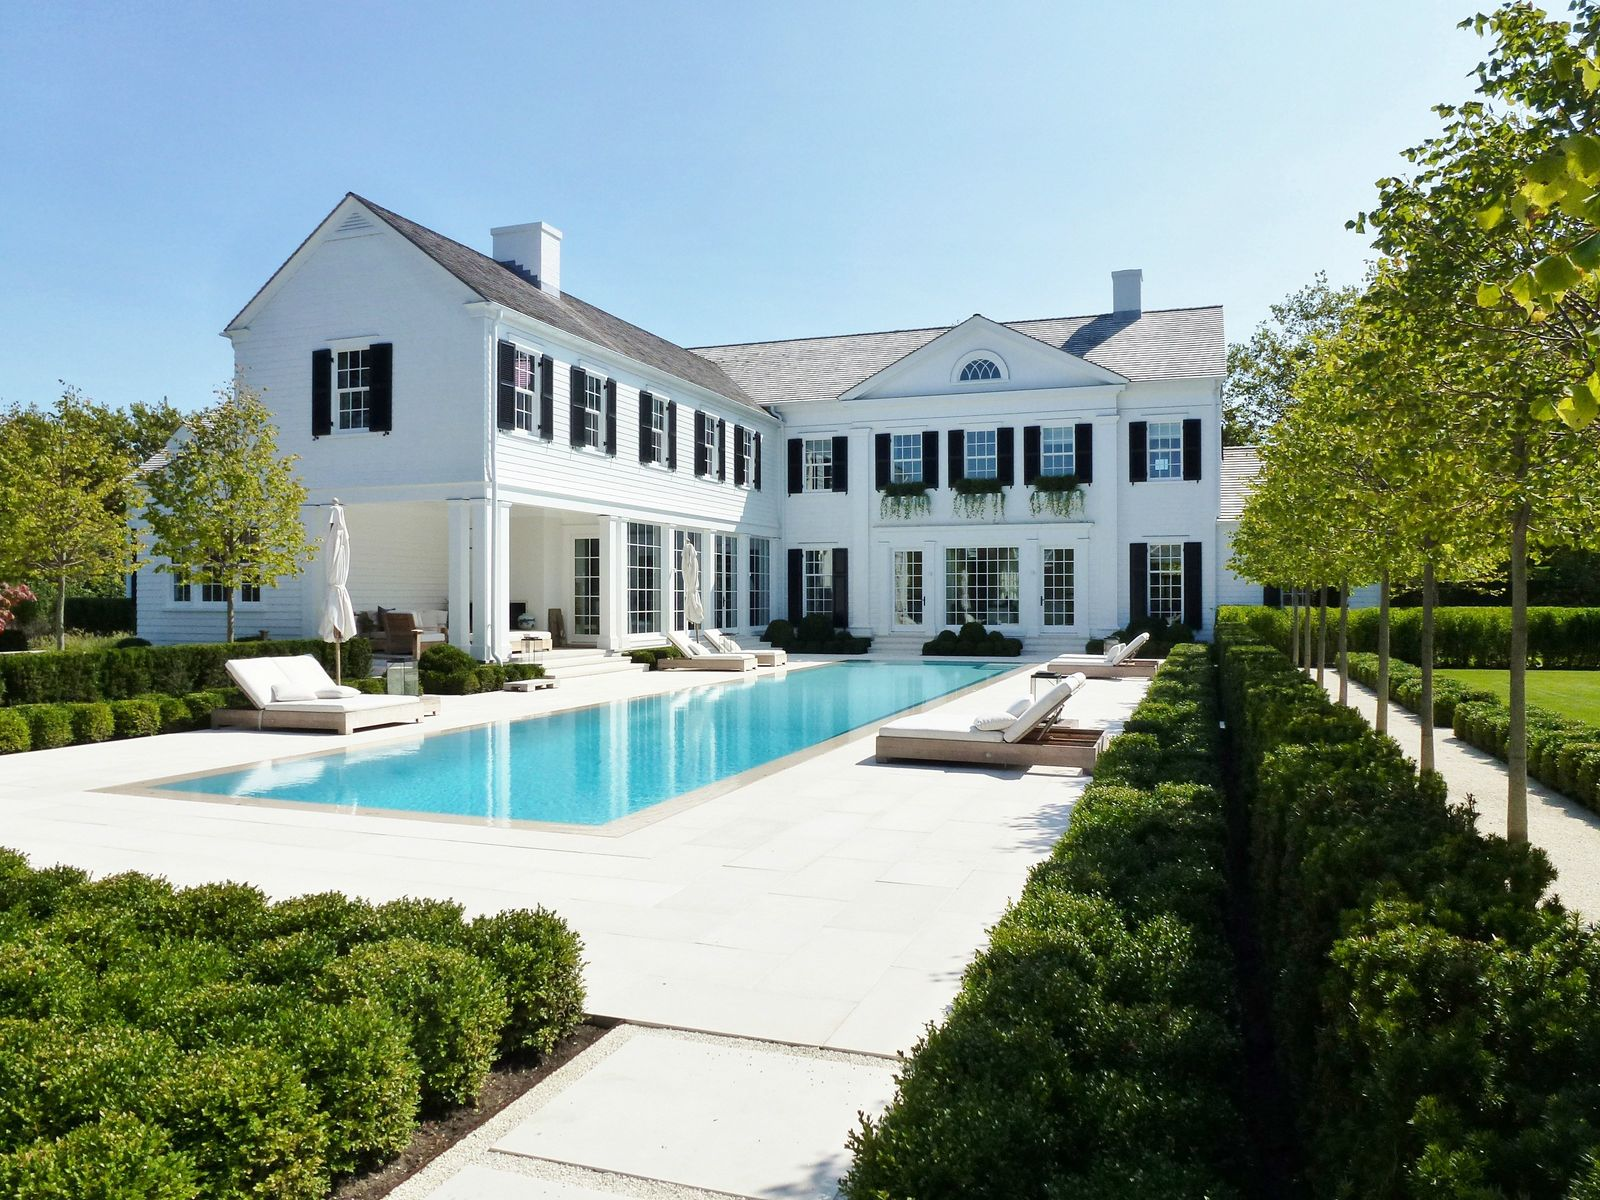 SOUTHAMPTON VILLAGE BEST OF THE BEST., Southampton NY Single Family Home - Hamptons Real Estate